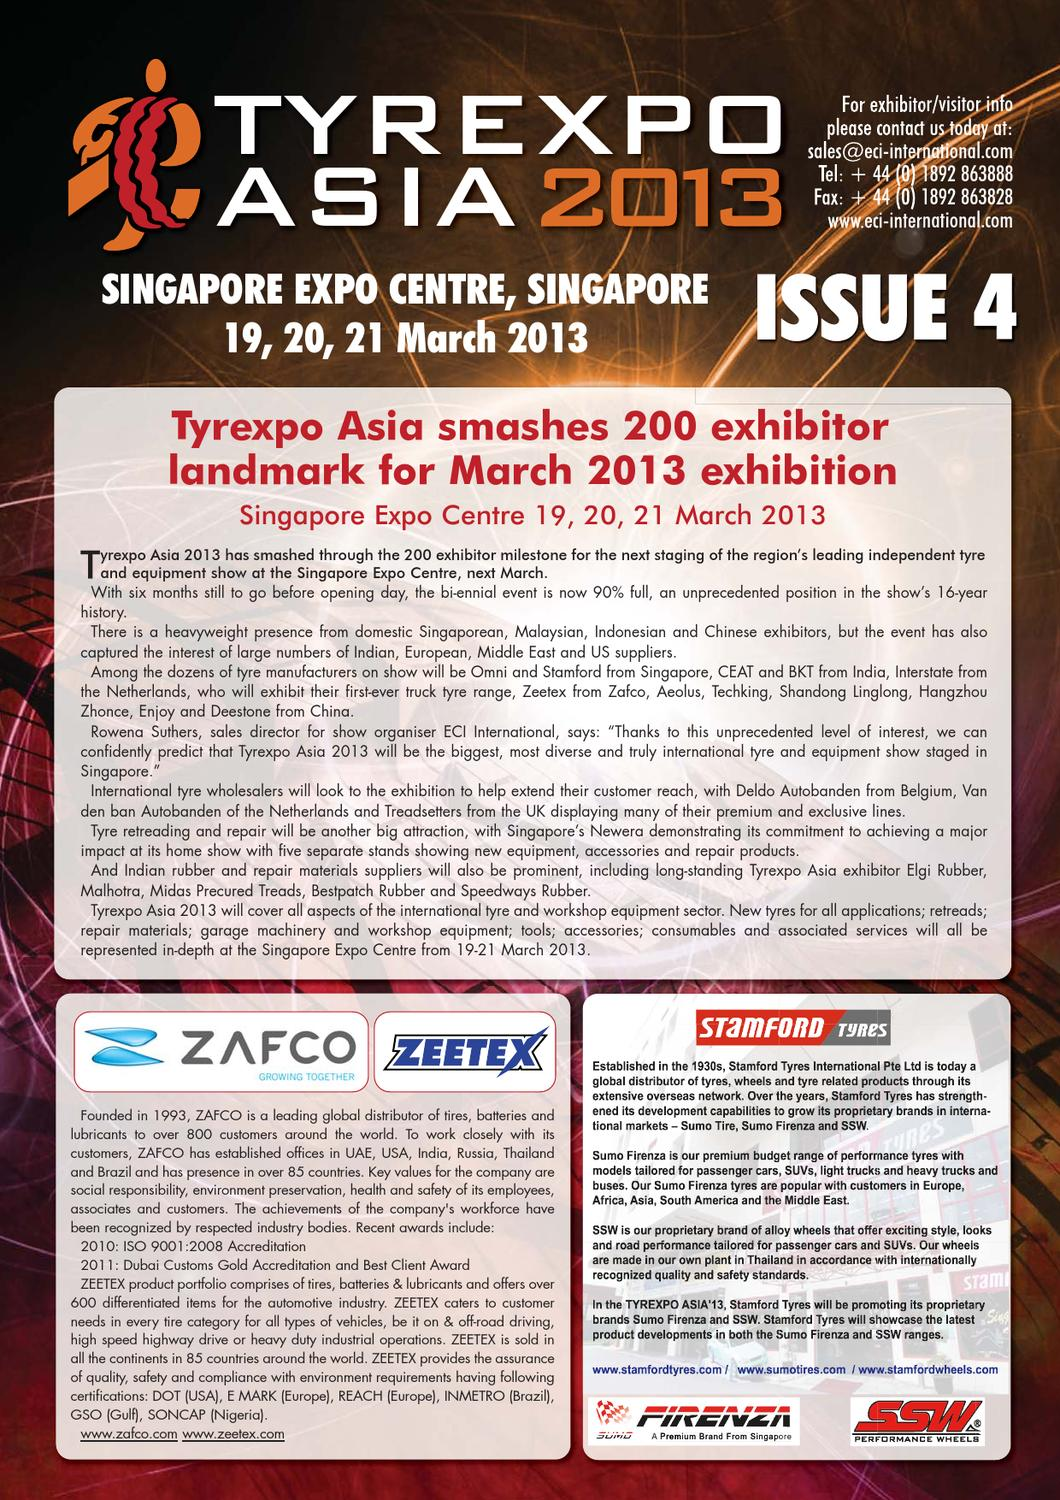 Tyrexp Asia13 Newsletter Issue 4 By First Sight Graphics Issuu